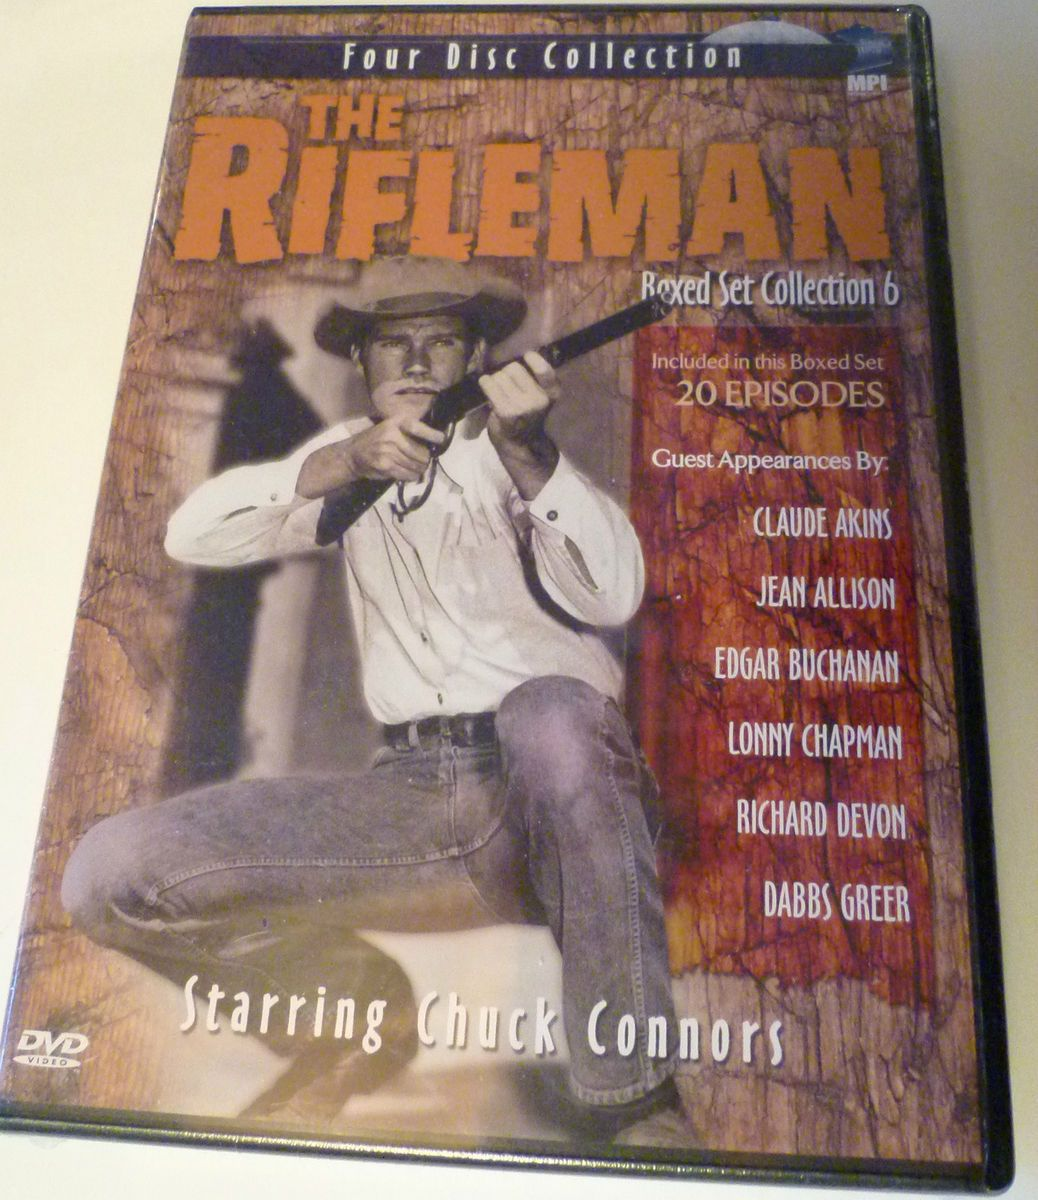 The Rifleman  Brand New Factory Sealed Boxed Set 4 disc Collection 6